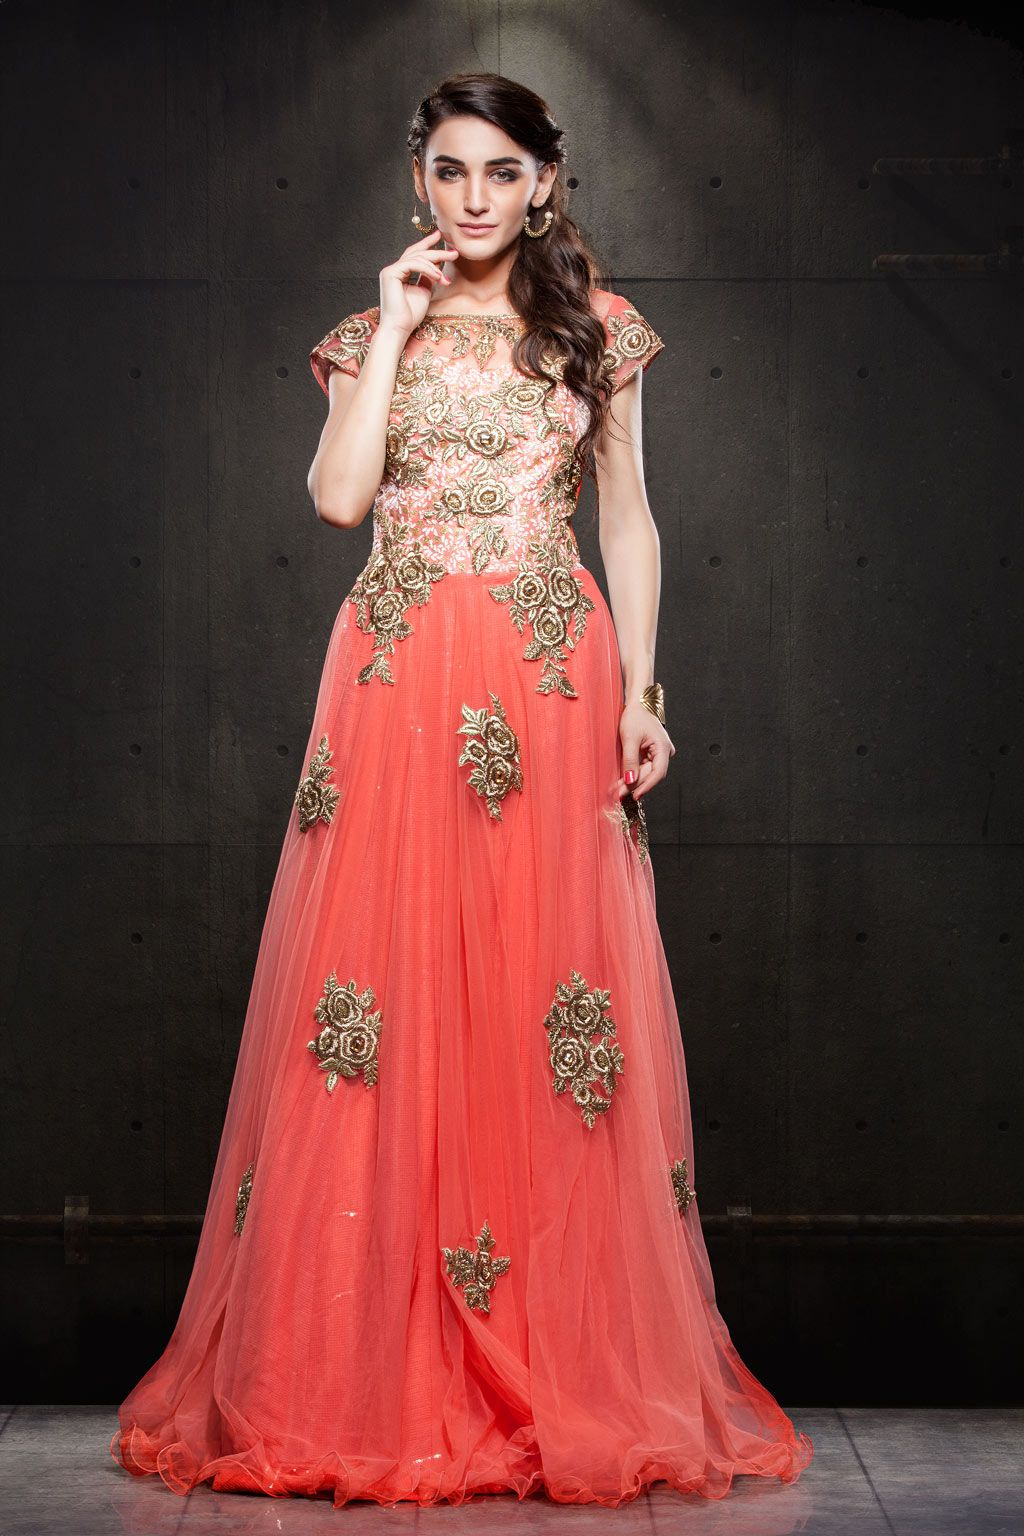 Peach Net Floor Length Gown 63164 Haute Couture Gowns Party